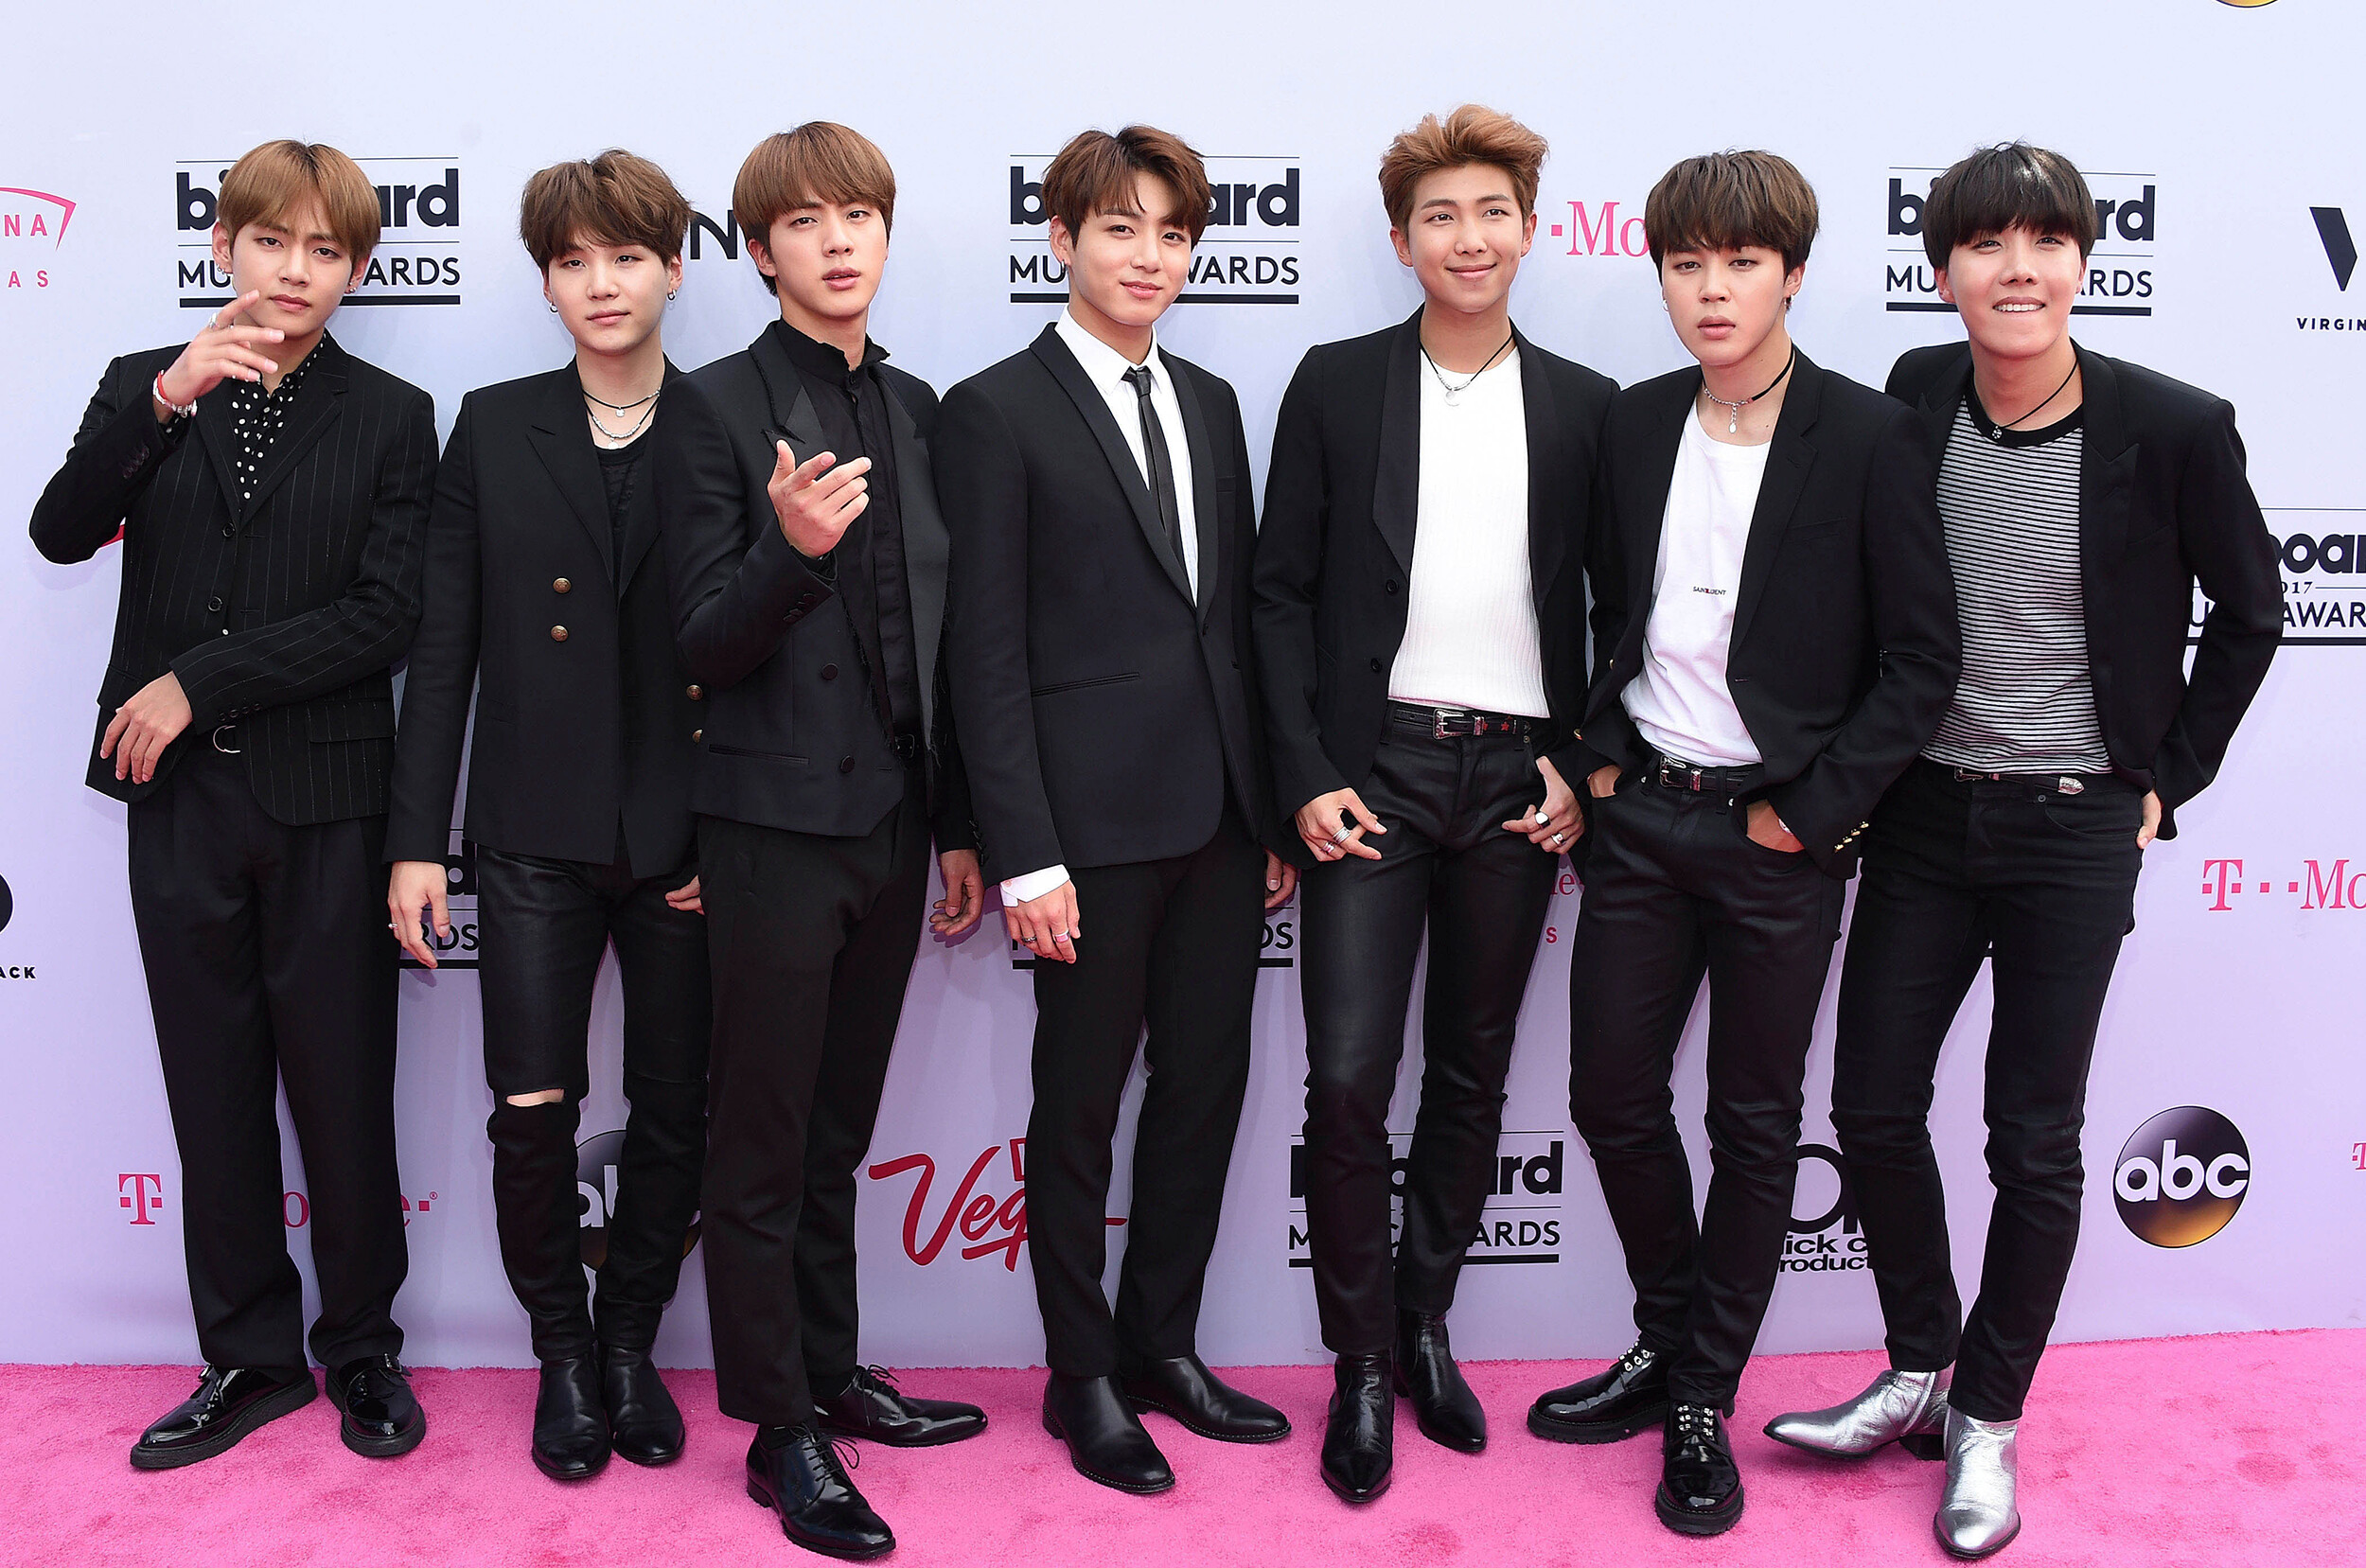 BTS world tour canceled due to ongoing pandemic